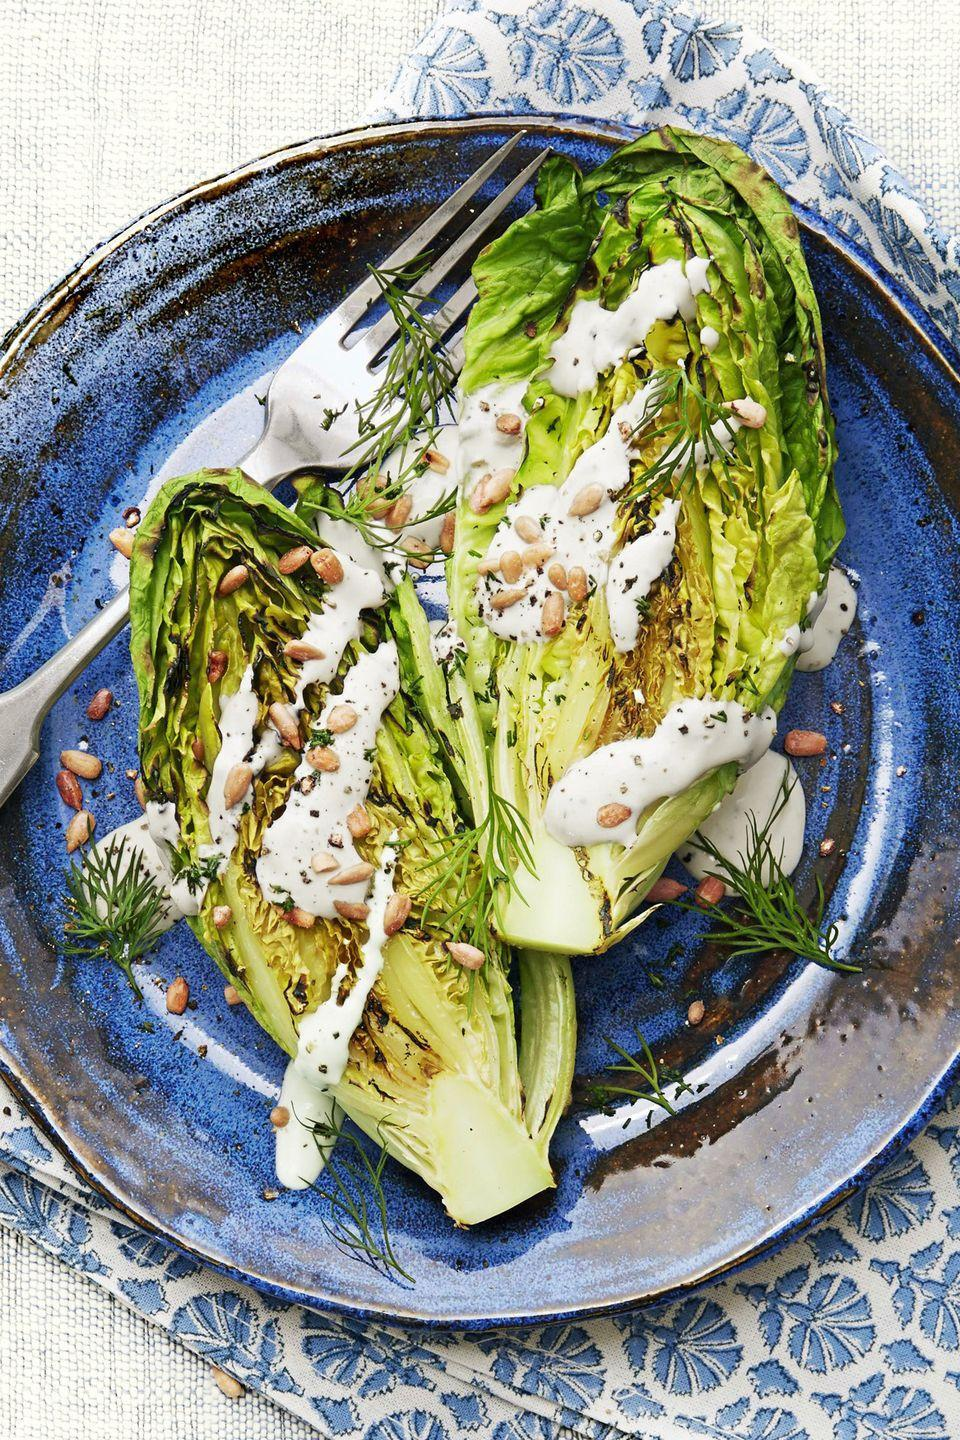 """<p>Reinvent a classic Caesar salad by throwing romaine lettuce hearts on the grill. </p><p><em><a href=""""https://www.goodhousekeeping.com/food-recipes/healthy/a45180/feta-dill-greek-caesar-recipe/"""" rel=""""nofollow noopener"""" target=""""_blank"""" data-ylk=""""slk:Get the recipe for Feta-Dill Greek Caesar Salad »"""" class=""""link rapid-noclick-resp"""">Get the recipe for Feta-Dill Greek Caesar Salad »</a></em></p><p><strong>RELATED: </strong><a href=""""https://www.goodhousekeeping.com/food-recipes/cooking/g532/types-of-lettuce/"""" rel=""""nofollow noopener"""" target=""""_blank"""" data-ylk=""""slk:11 Types of Lettuce to Try So You'll Never Have a Boring Salad Again"""" class=""""link rapid-noclick-resp"""">11 Types of Lettuce to Try So You'll Never Have a Boring Salad Again</a></p>"""